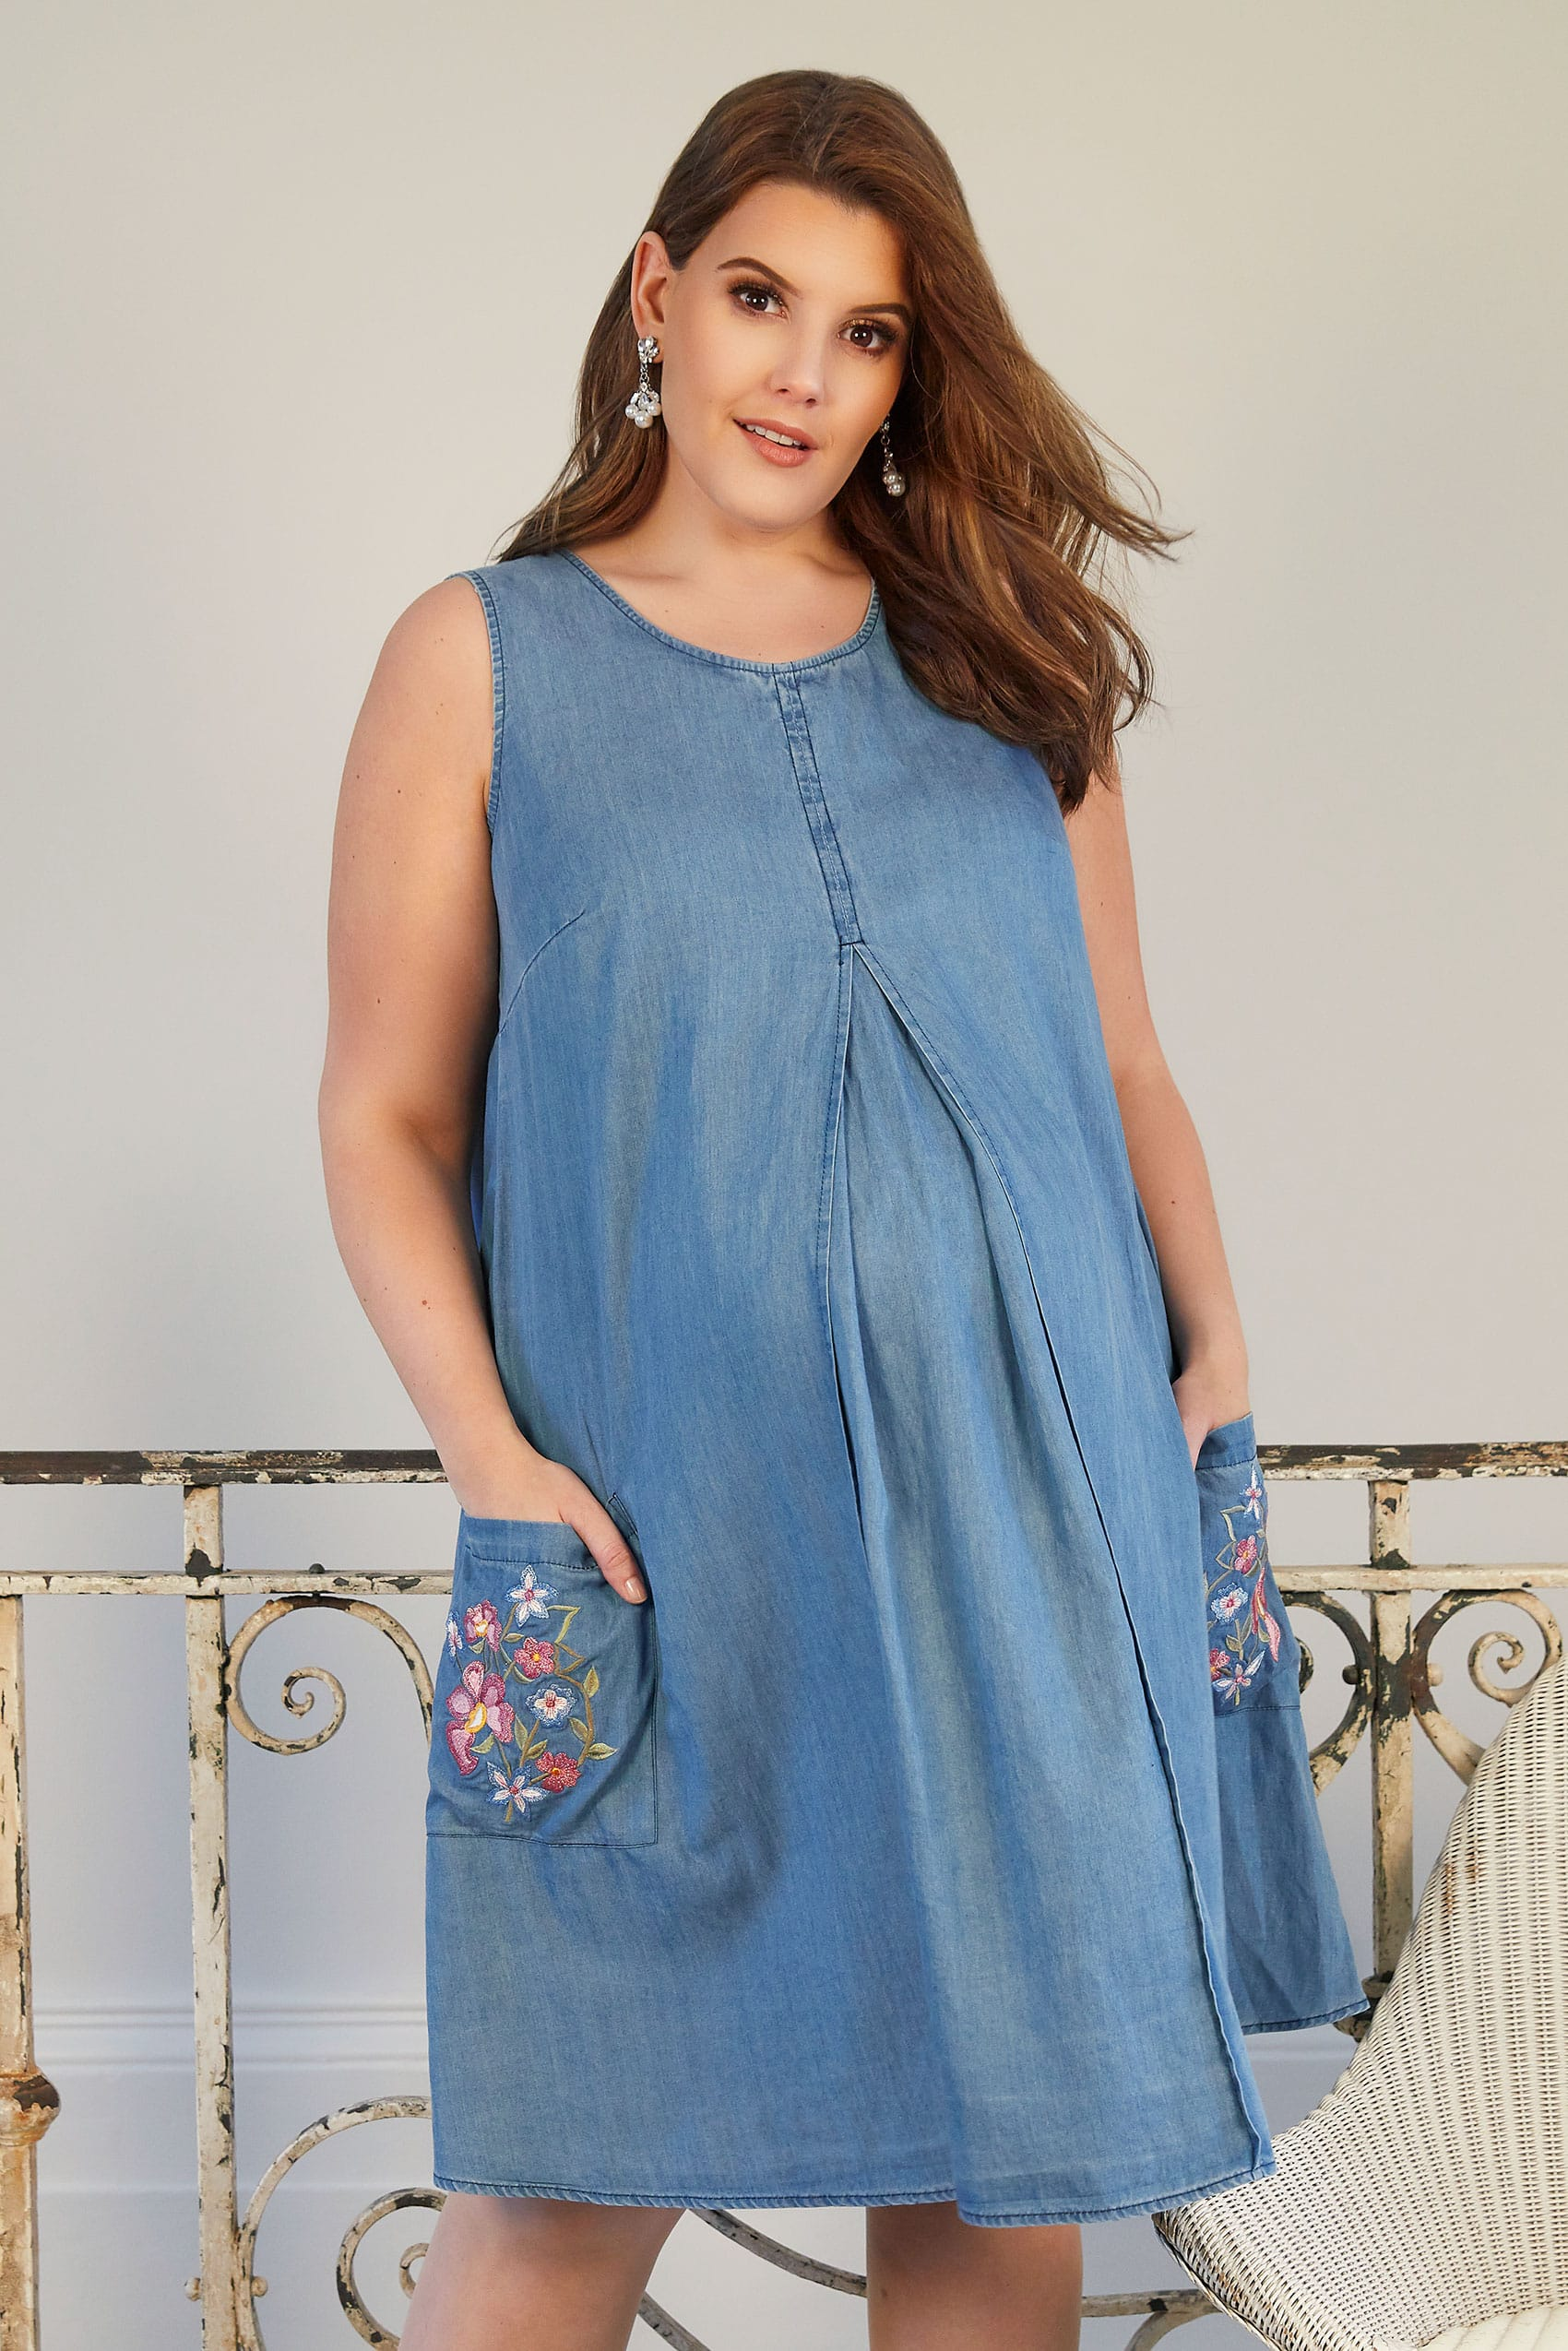 bump it maternity robe bleu chambray avec broderie fleurs taille 44 60. Black Bedroom Furniture Sets. Home Design Ideas